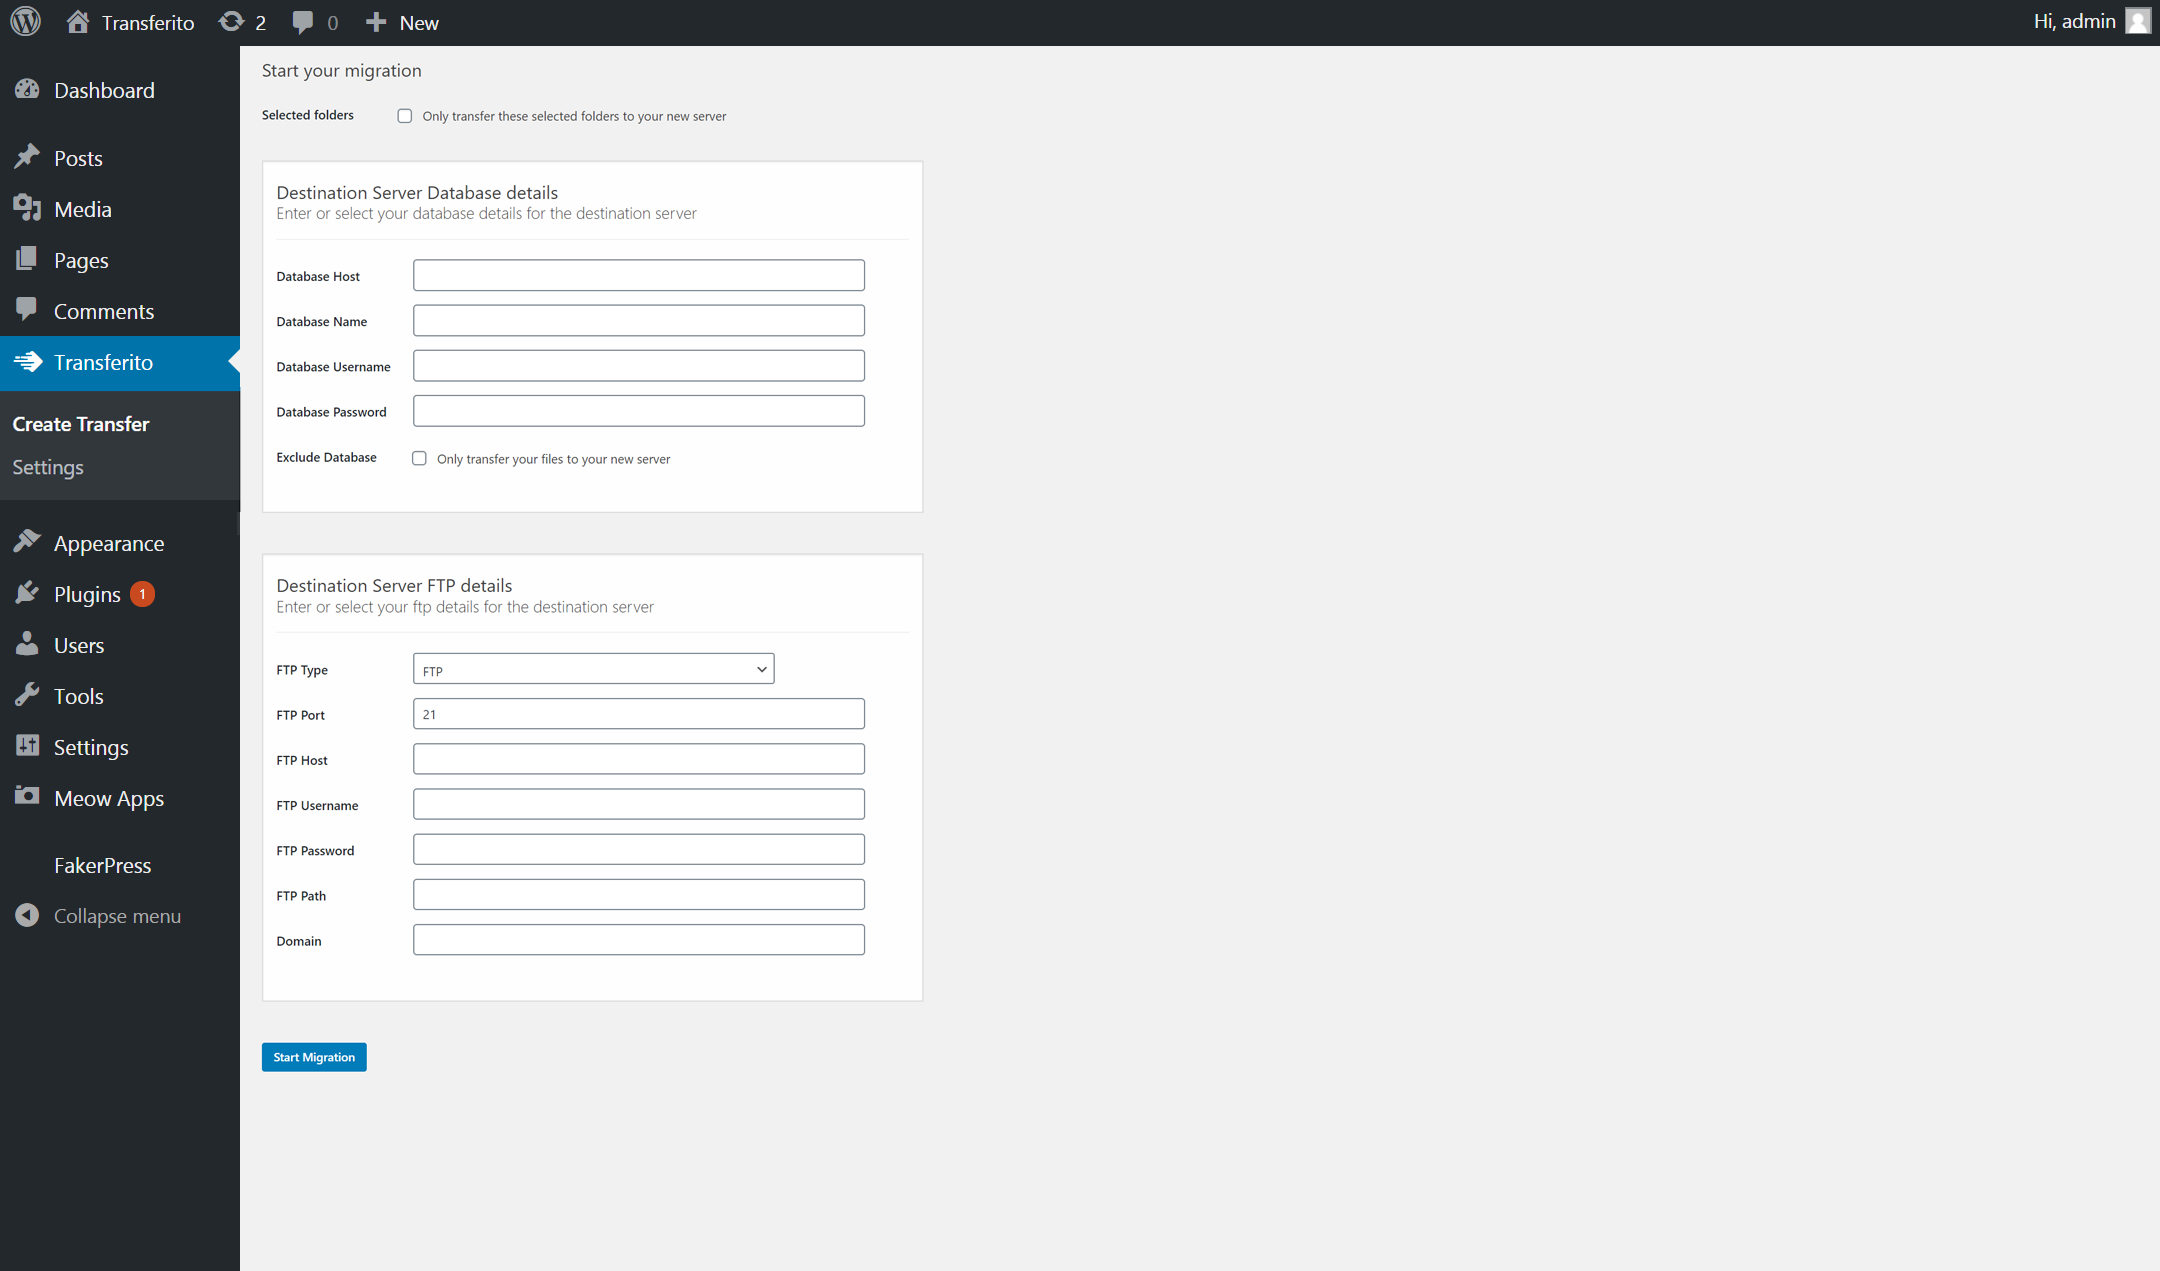 Start a manual migration directly from the WordPress dashboard